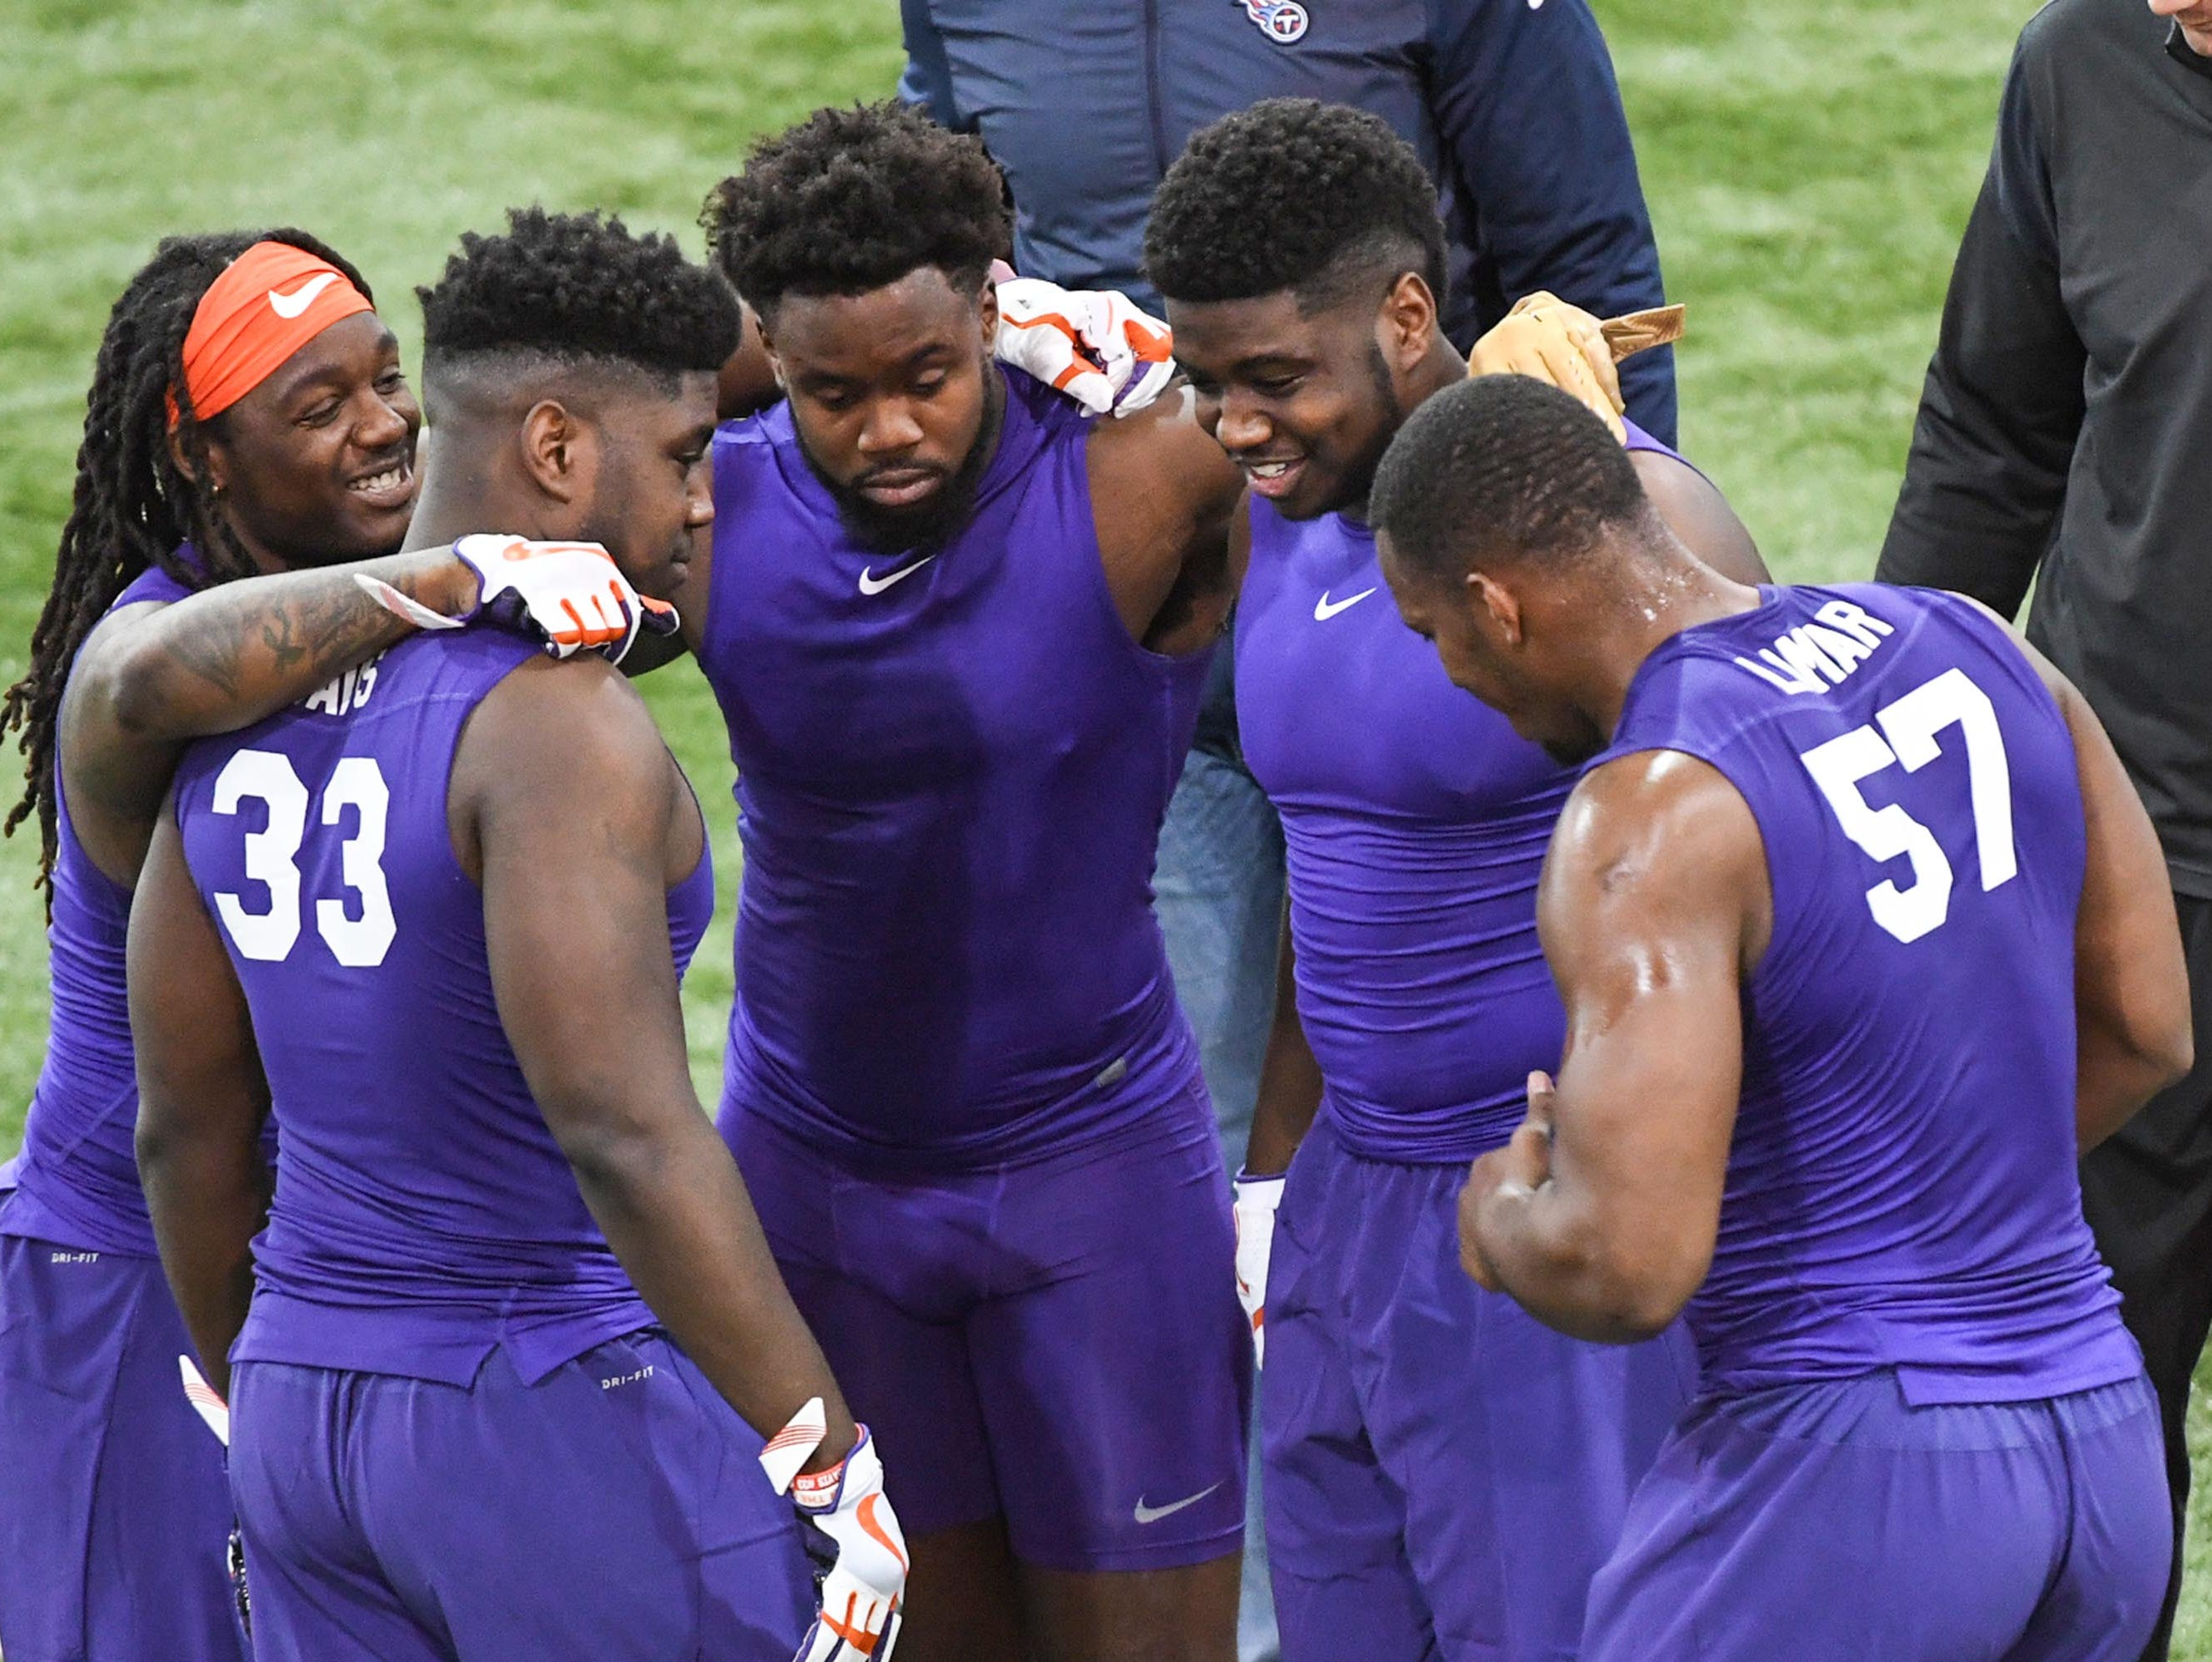 Clemson linebackers huddle during Clemson pro day at the Poe Indoor Facility in Clemson Thursday, March 14, 2019.